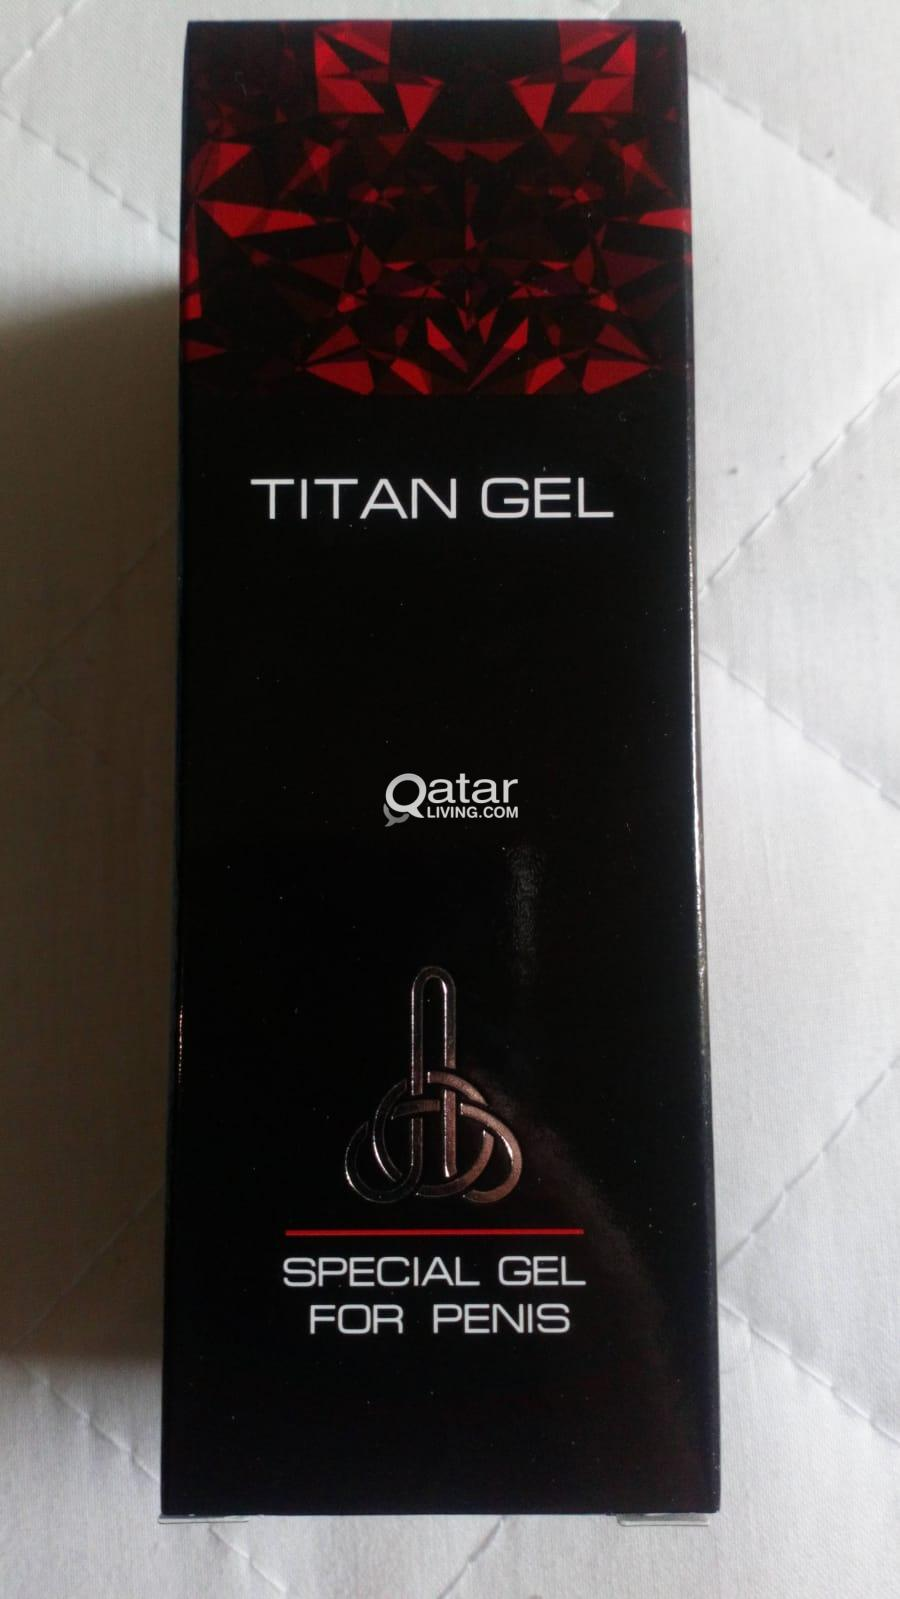 Titan Gel Now In Qatar For Just 180 Qr Qatar Living